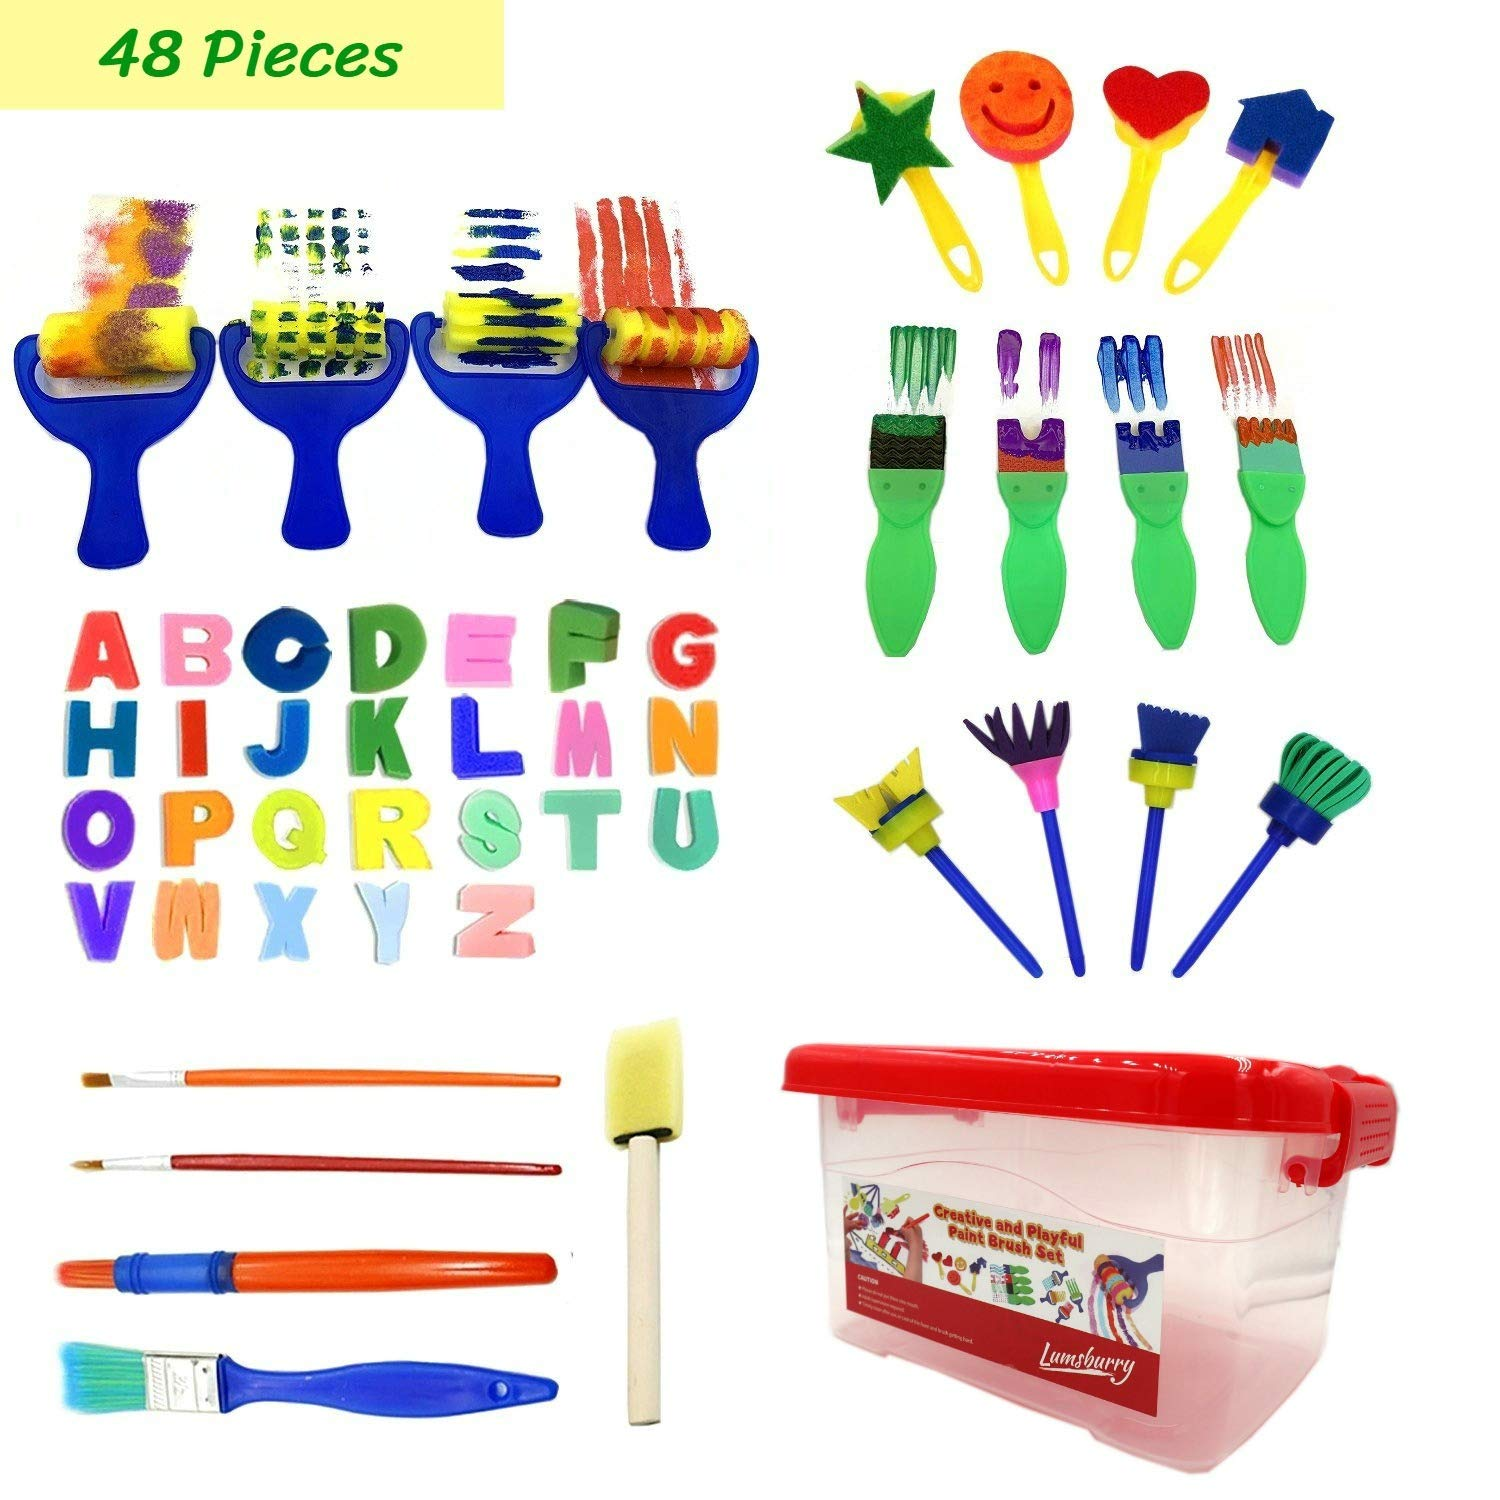 47pcs Kids Art and Craft Early Learning Painting Sponges Stamper Mini Paint Brushes Kit with 26 English Alphabets Drawing Tools (with Box) by Lumsburry